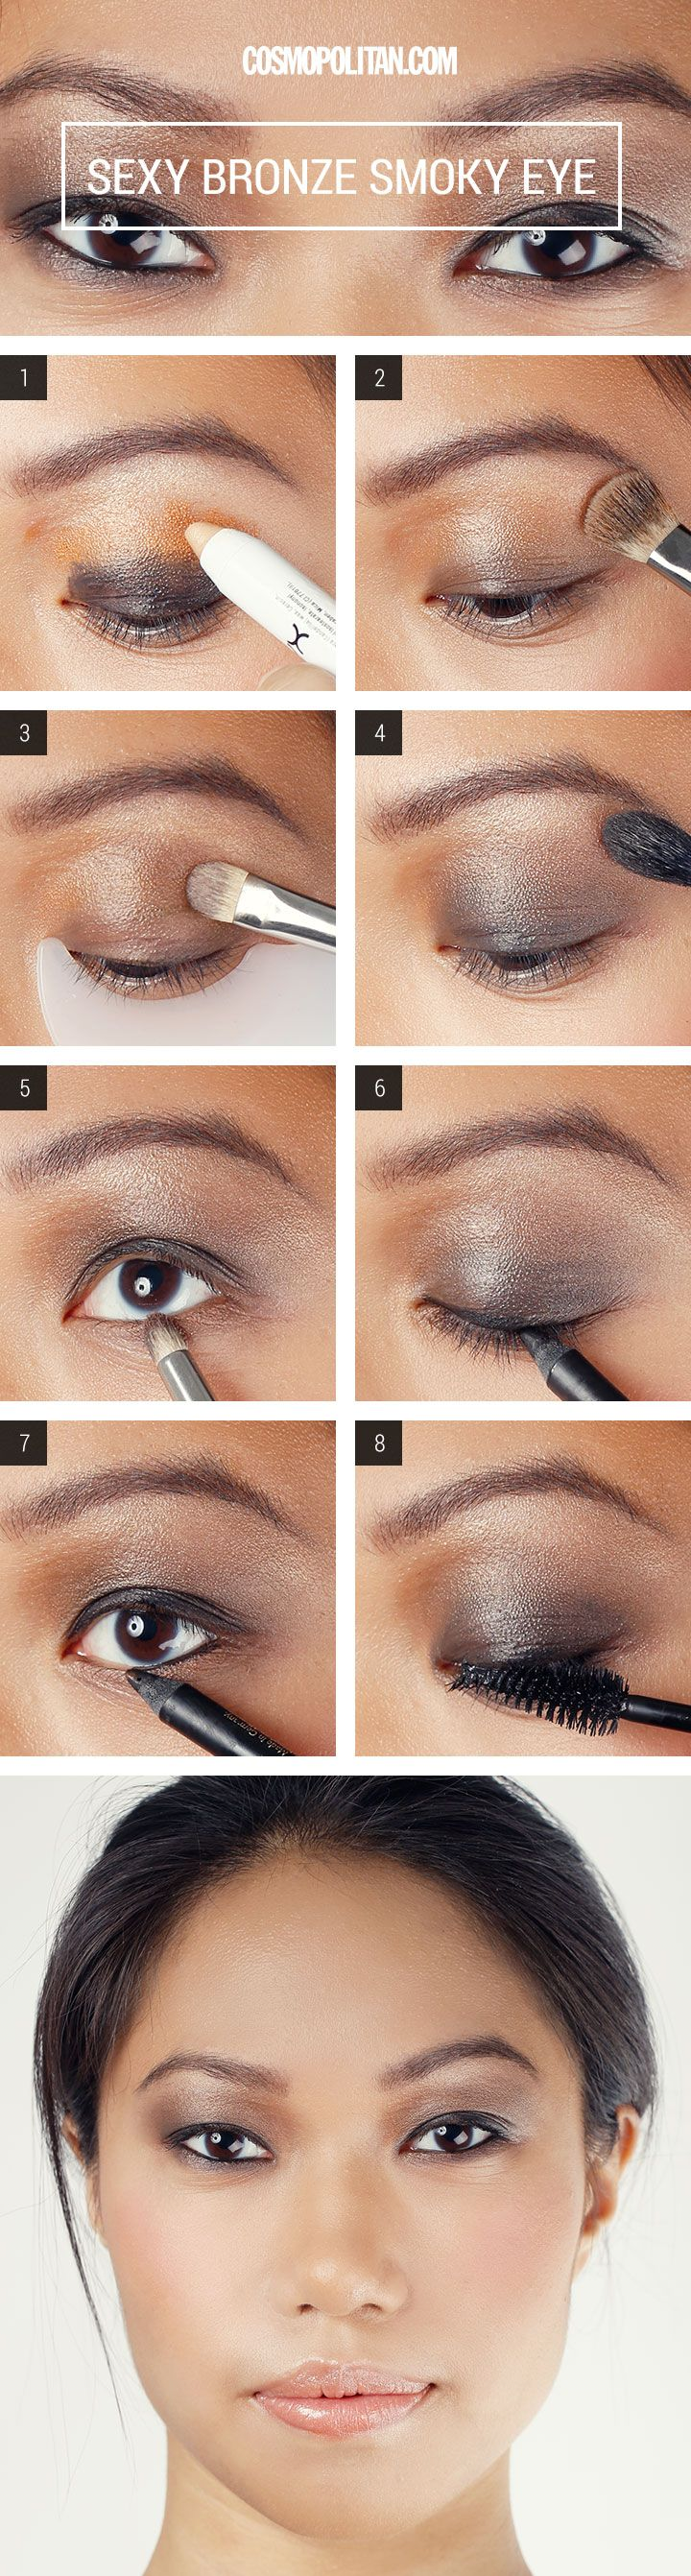 Cute drawing animal 183 kim kardashian at the beach 183 183 mom stress - Makeup How To Sexy Bronze Smoky Eyes